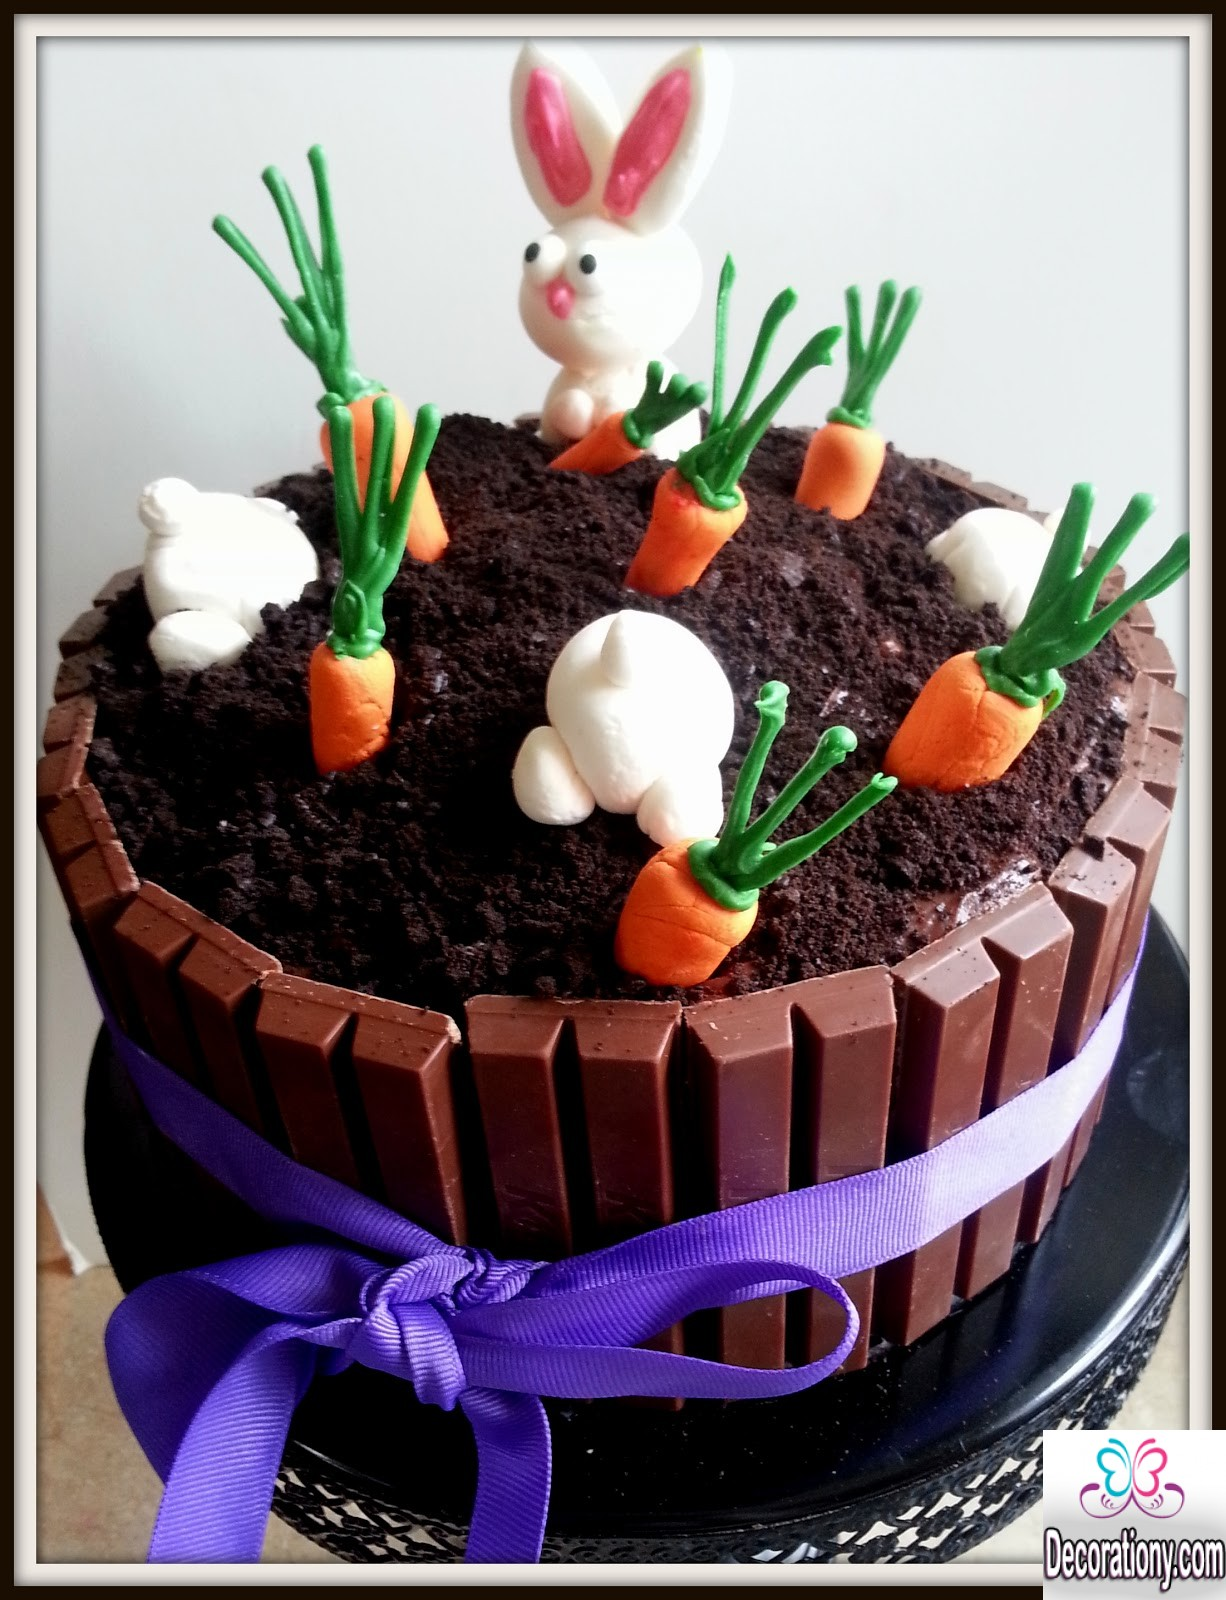 Cute easter bunny cake decorating ideas decoration y for Deco de paques